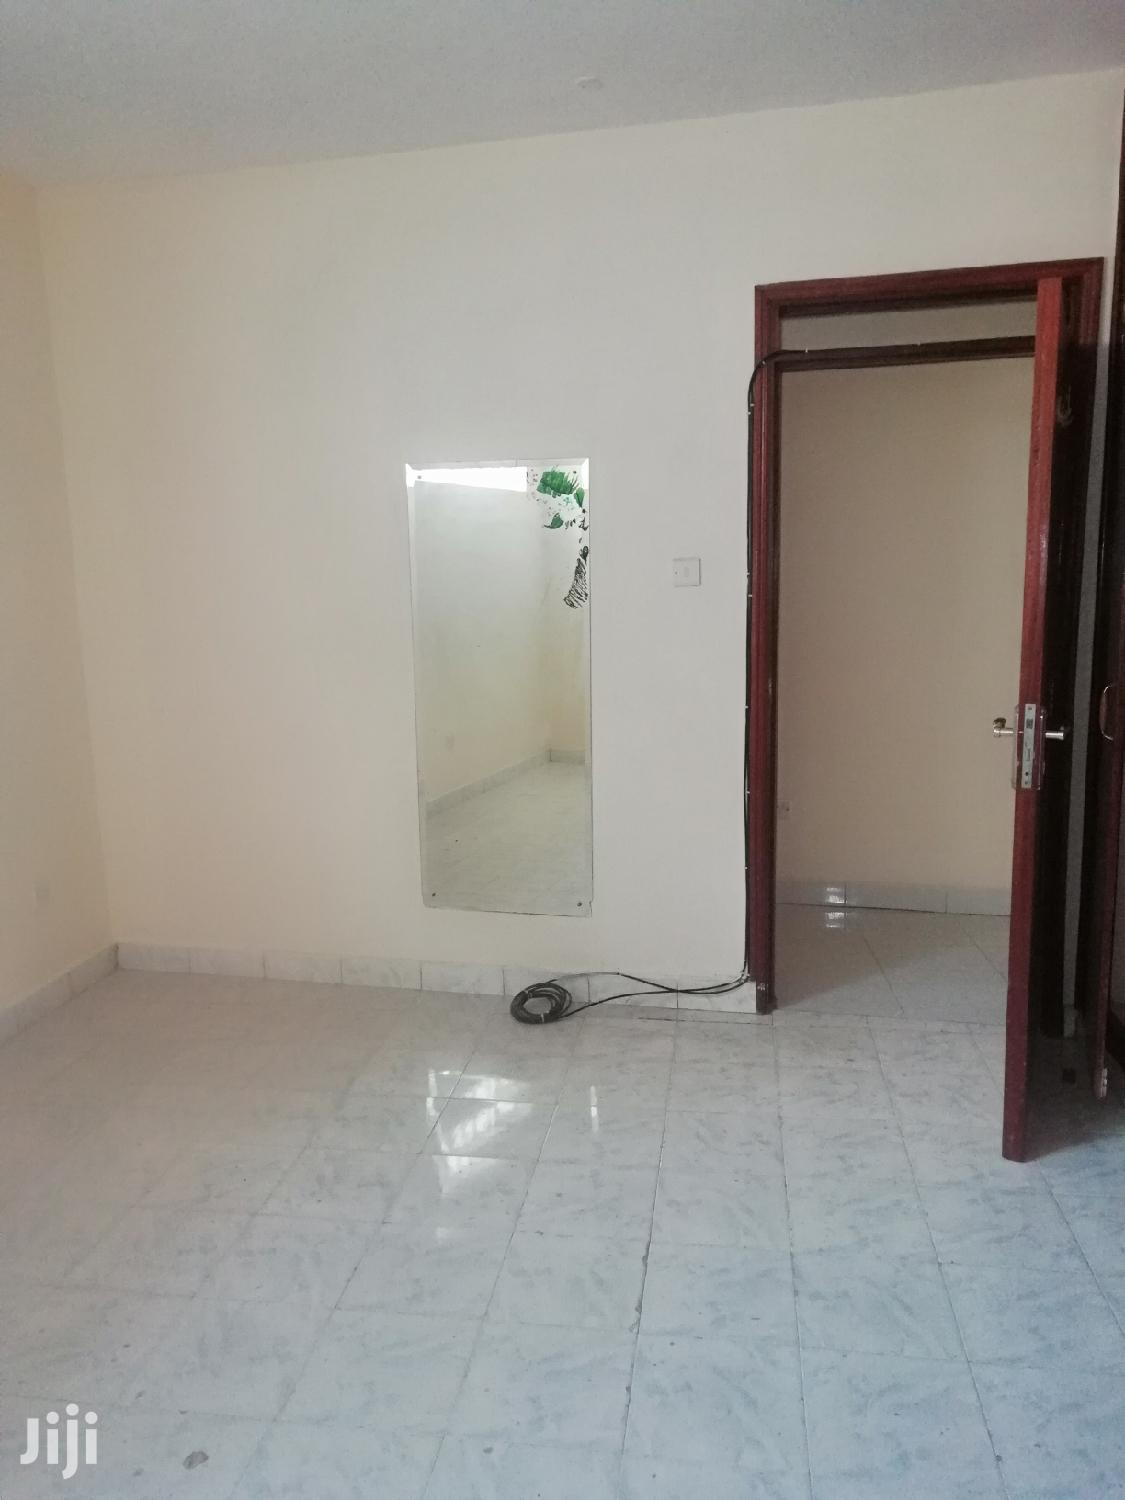 Luxury ;2brs Apartment Master Ensuite and Very Secure   Houses & Apartments For Rent for sale in Lavington, Nairobi, Kenya